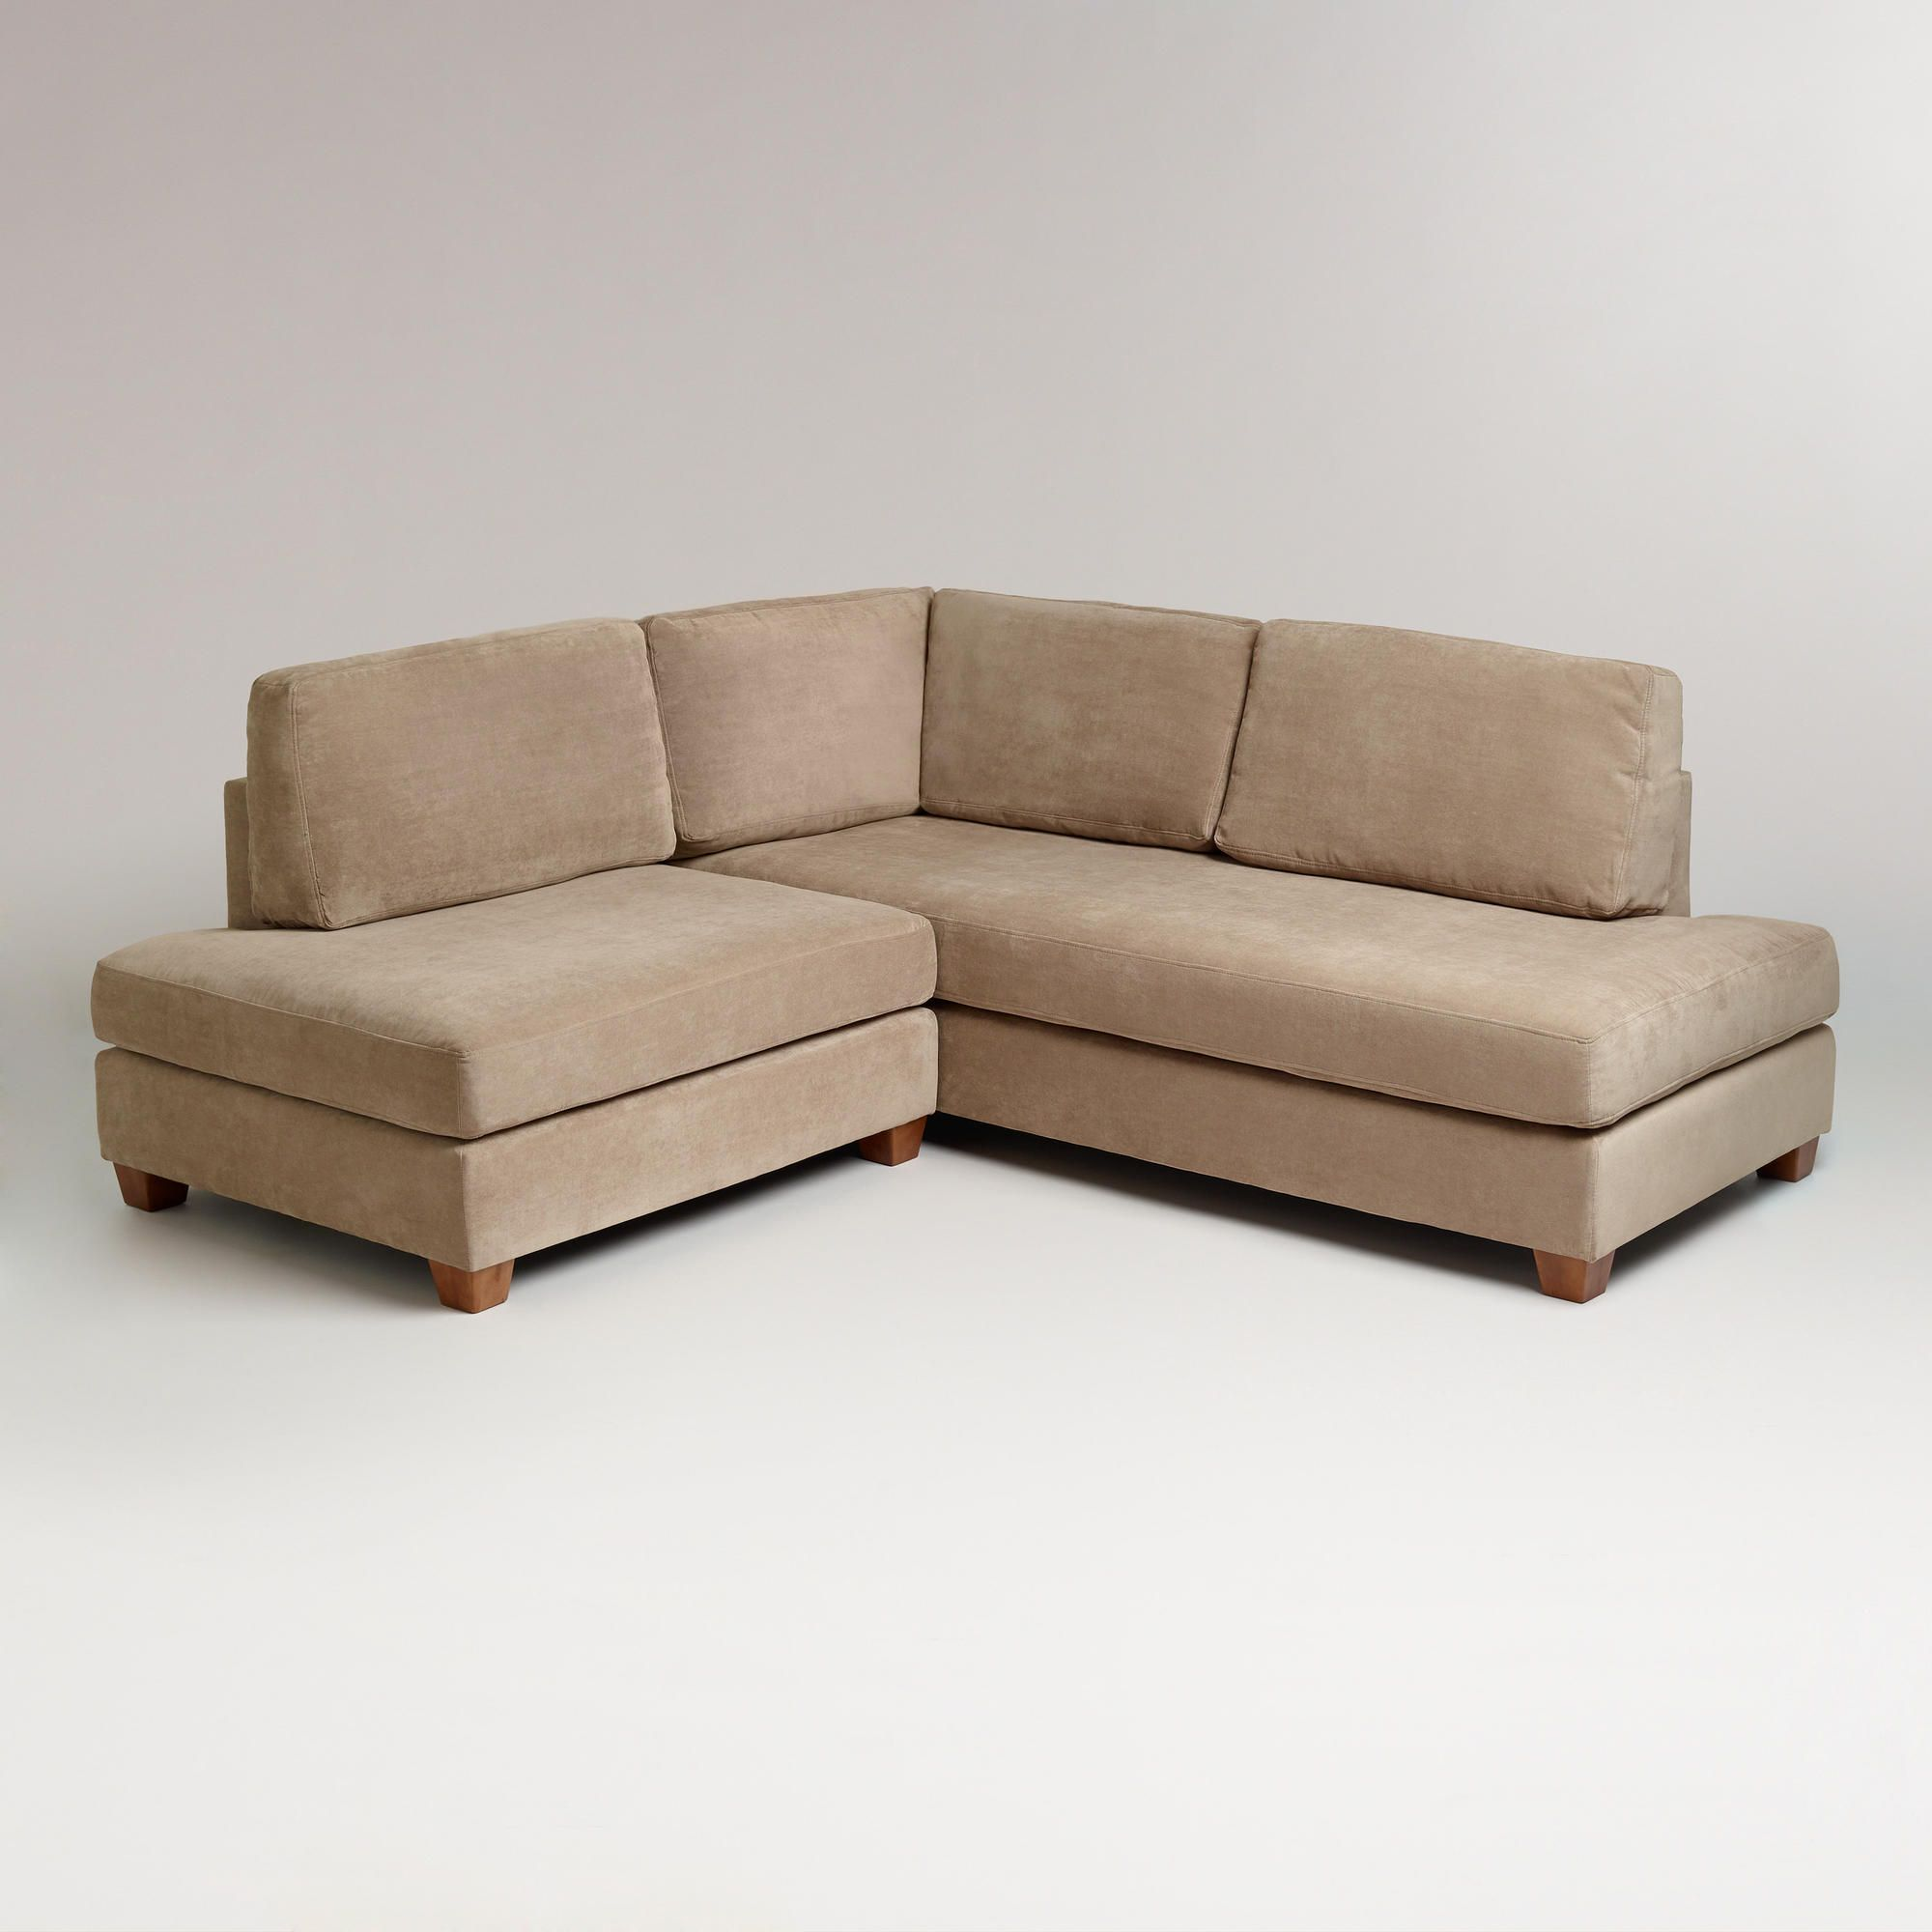 Putty Wyatt Sectional Sofa From Cost Plus World Market Small Sectional Sofa Sofas For Small